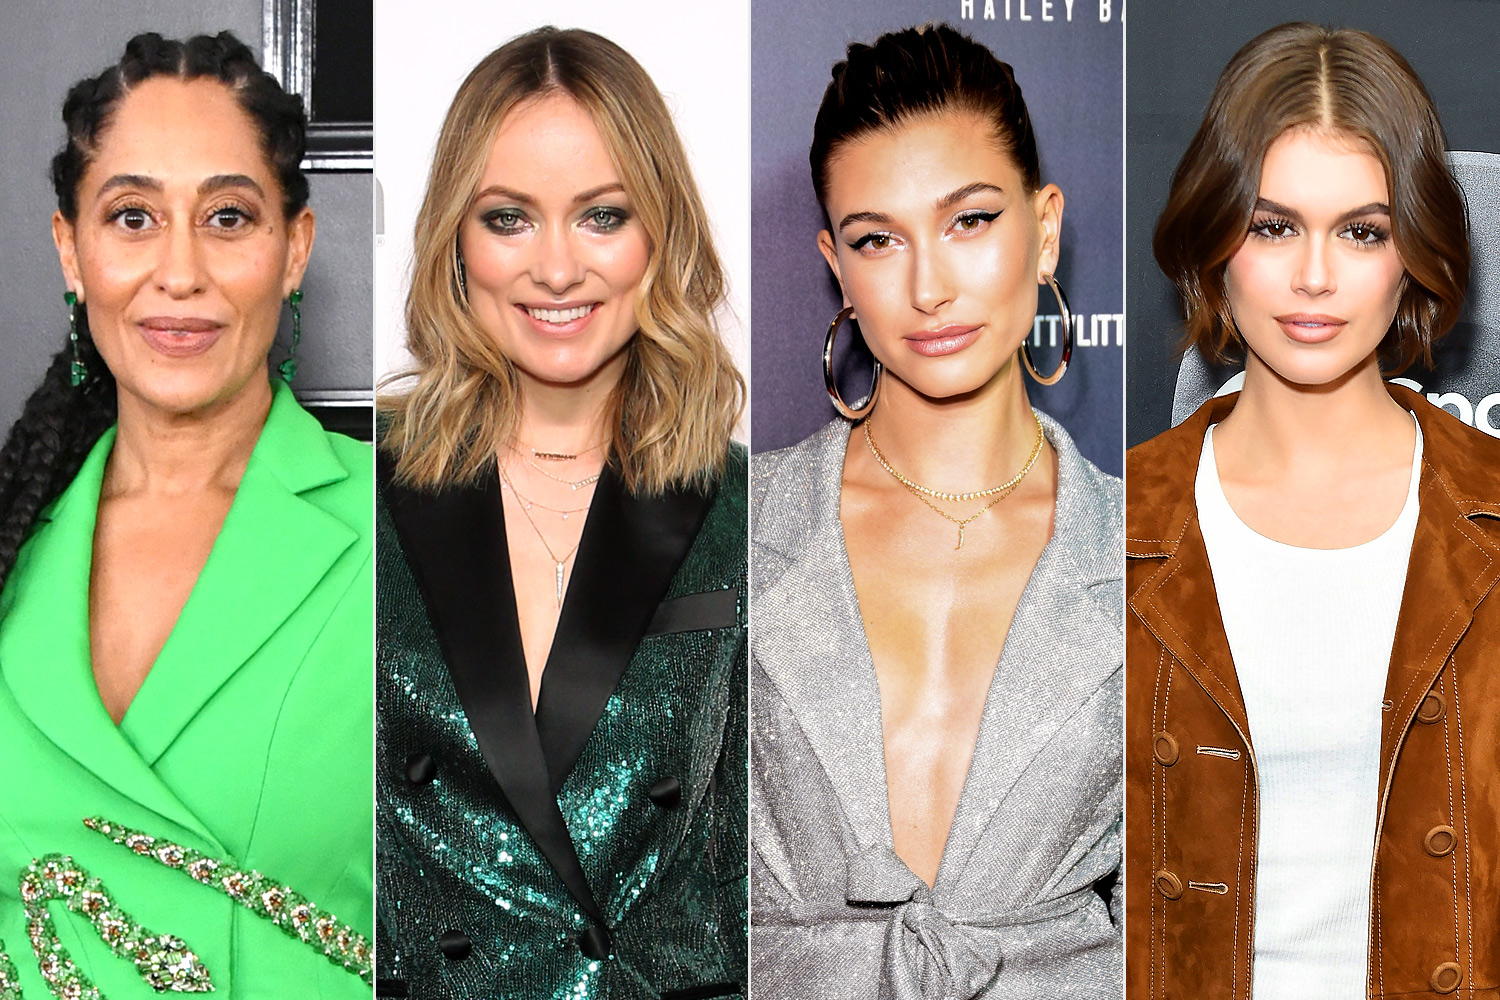 tracee ellis ross, olivia wilde, hailey bieber, and kaia gerber